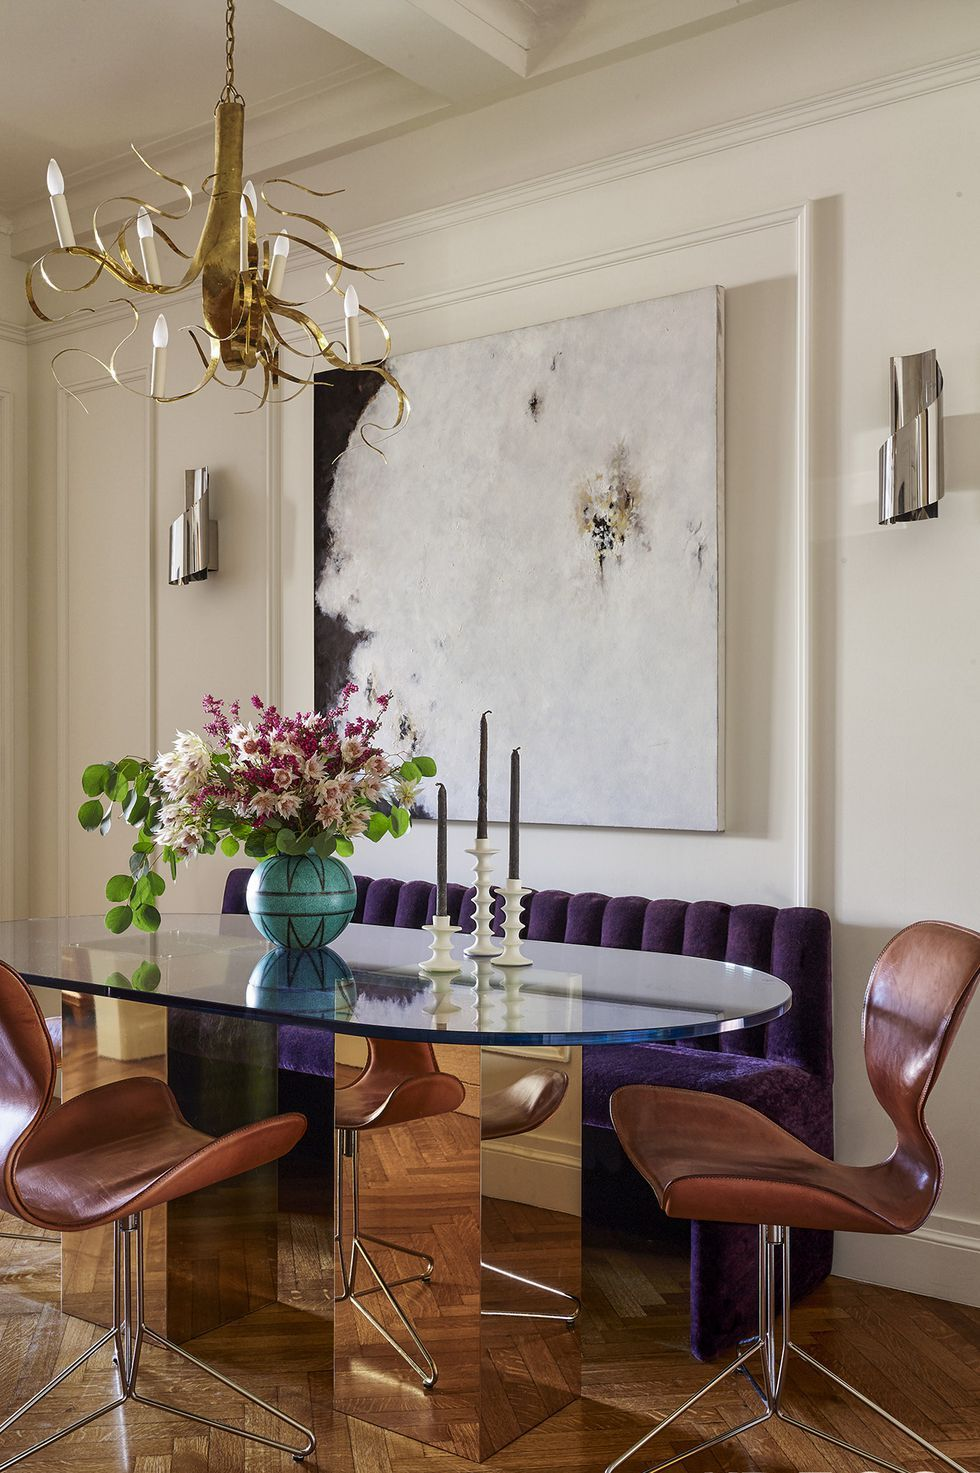 25 Charming Banquette Seating Ideas   Gorgeous Kitchen ...